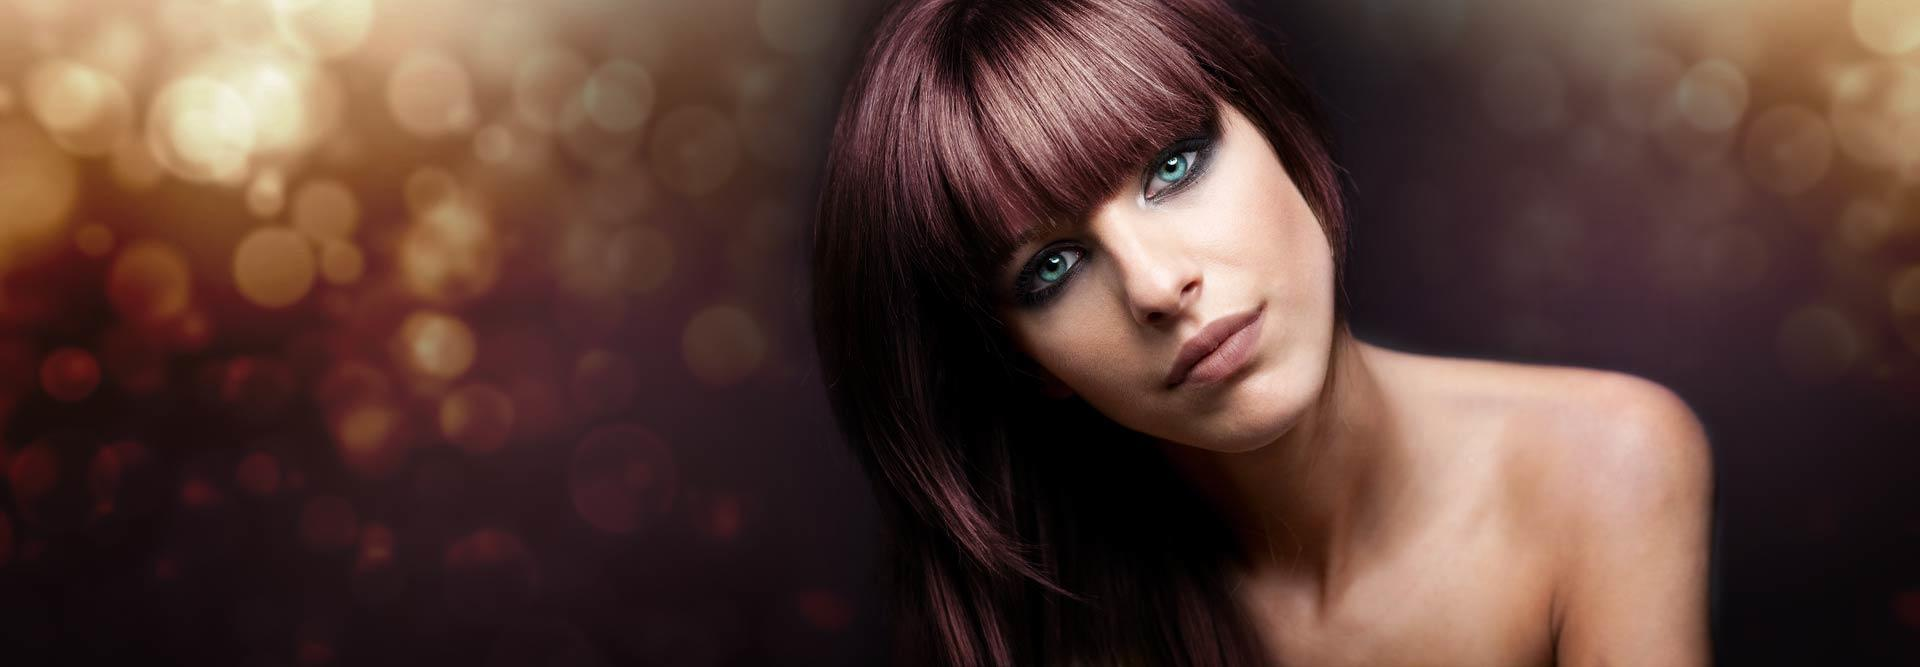 Salon Brielle - Long Island Hair Salon